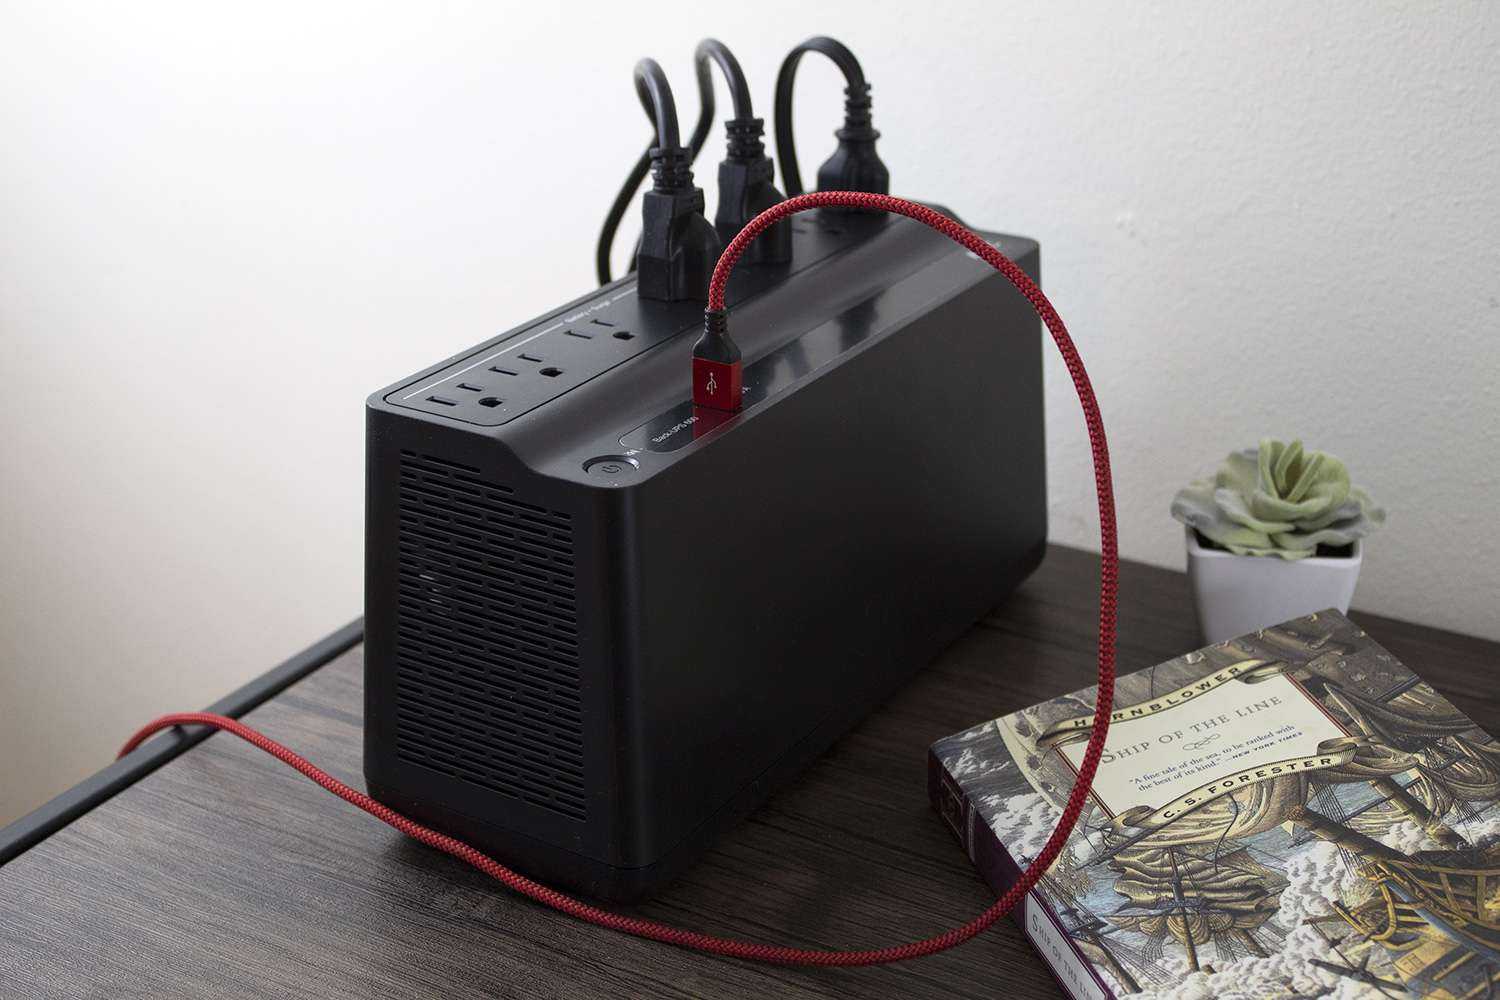 APC Back-UPS Battery Backup & Surge Protector with USB Charger